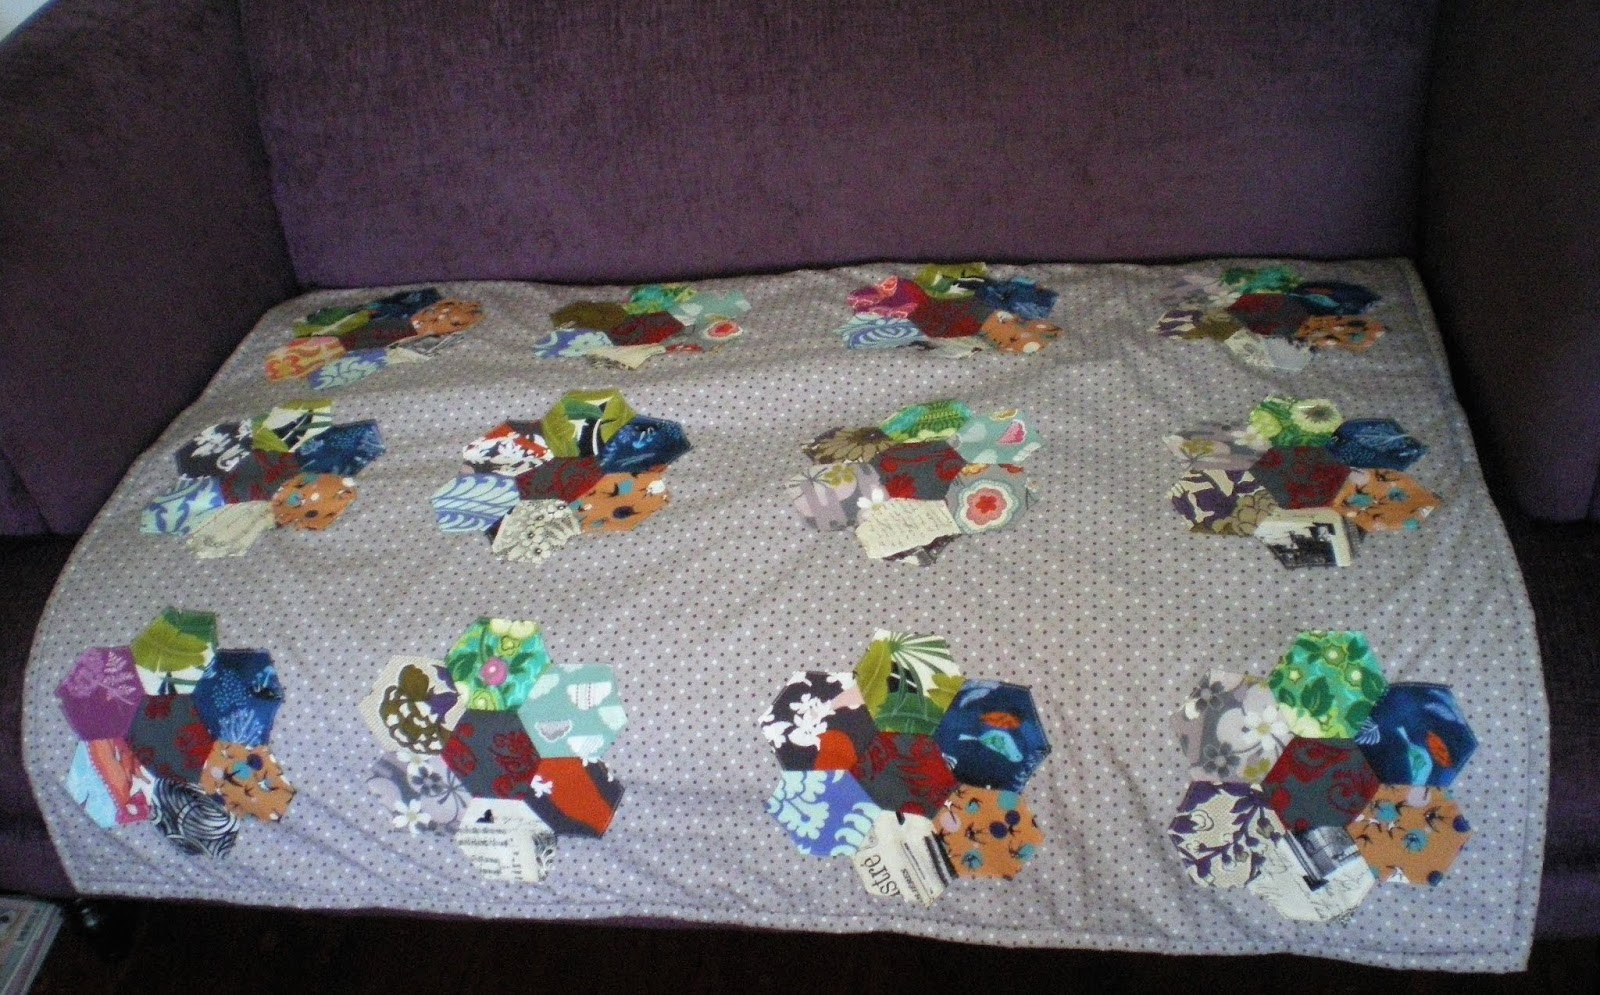 how to recycle my sofa throw pillows canada sew create and quilt it has been on the a couple of days now so is serving s purpose dogs seem like i used some plain white cotton for